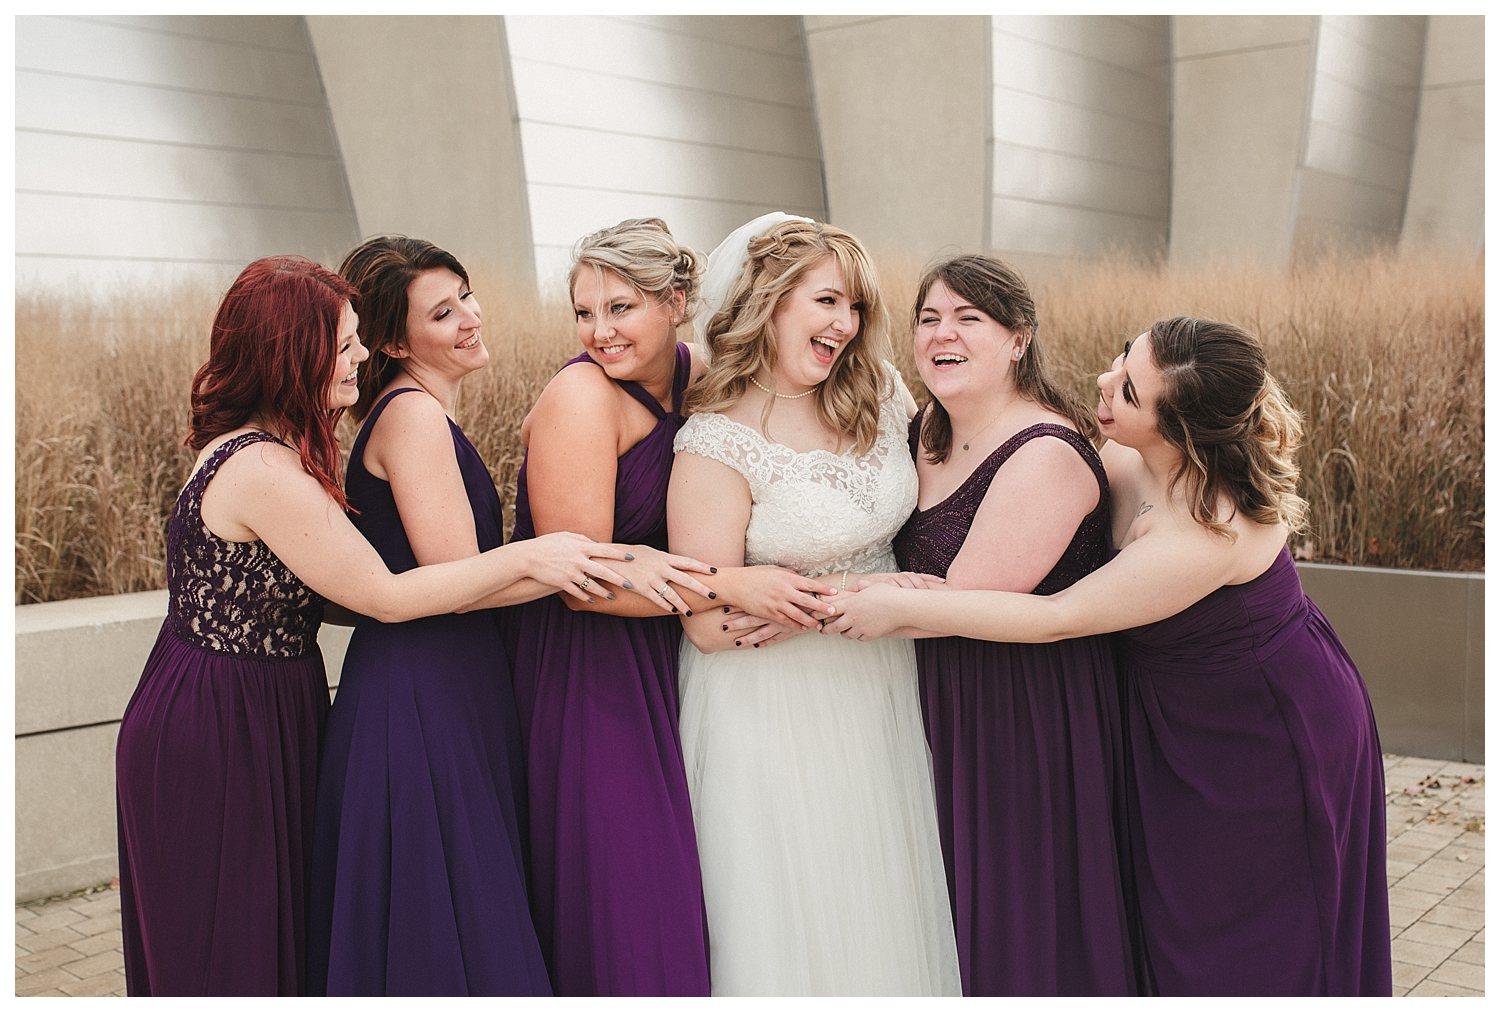 Kelsey_Diane_Photography_Loose_Mansion_Wedding_Photography_Kansas_City_Victor_Lyndsay_0346.jpg